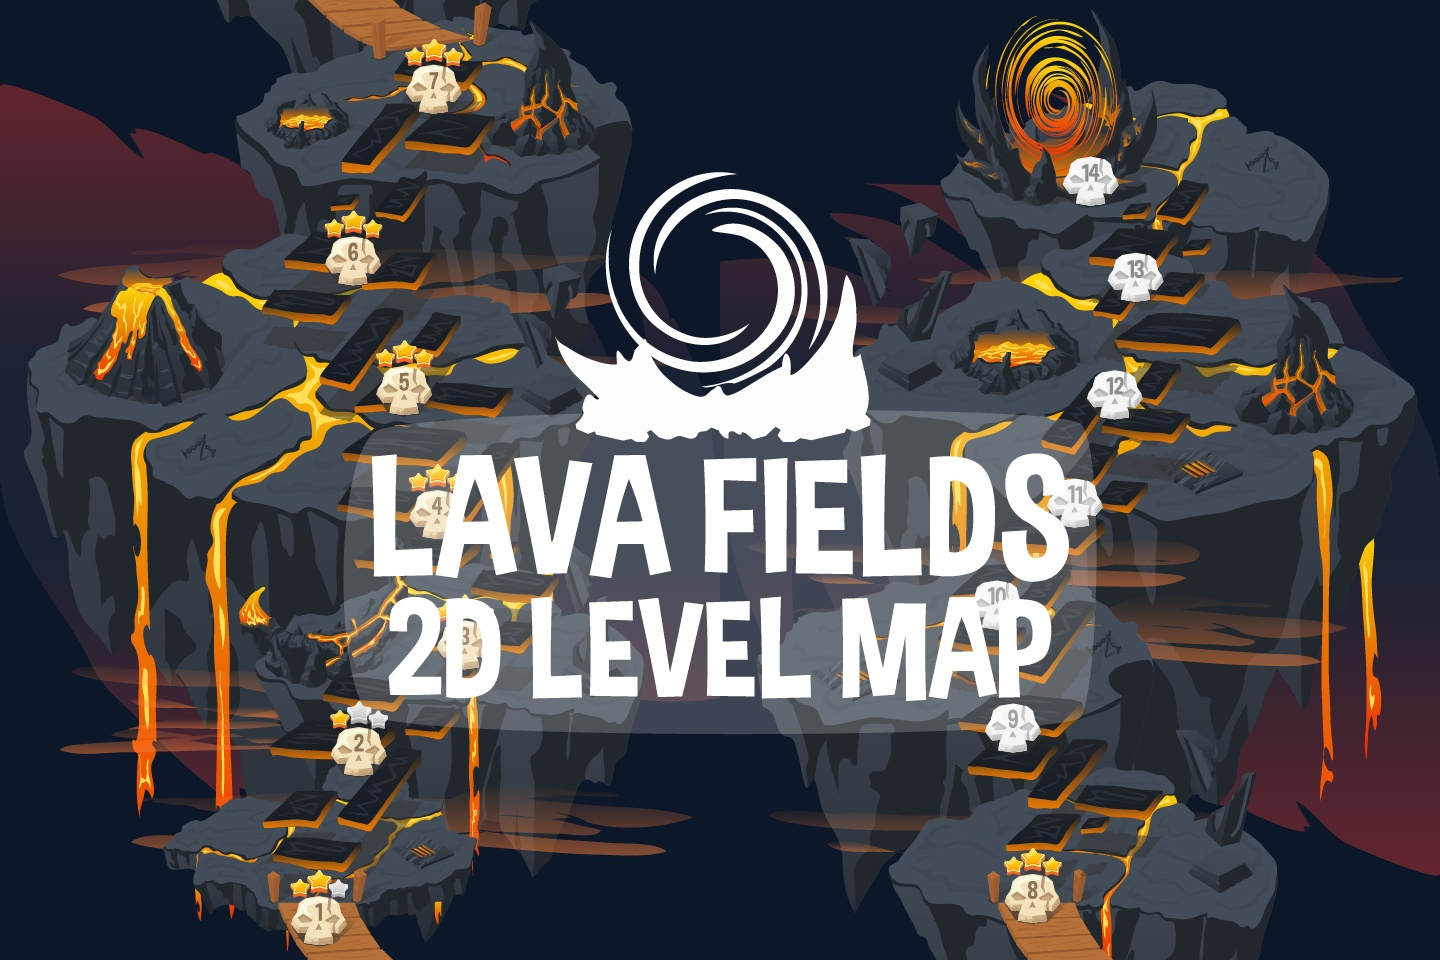 Free Lava Fields Level Map 2D Backgrounds